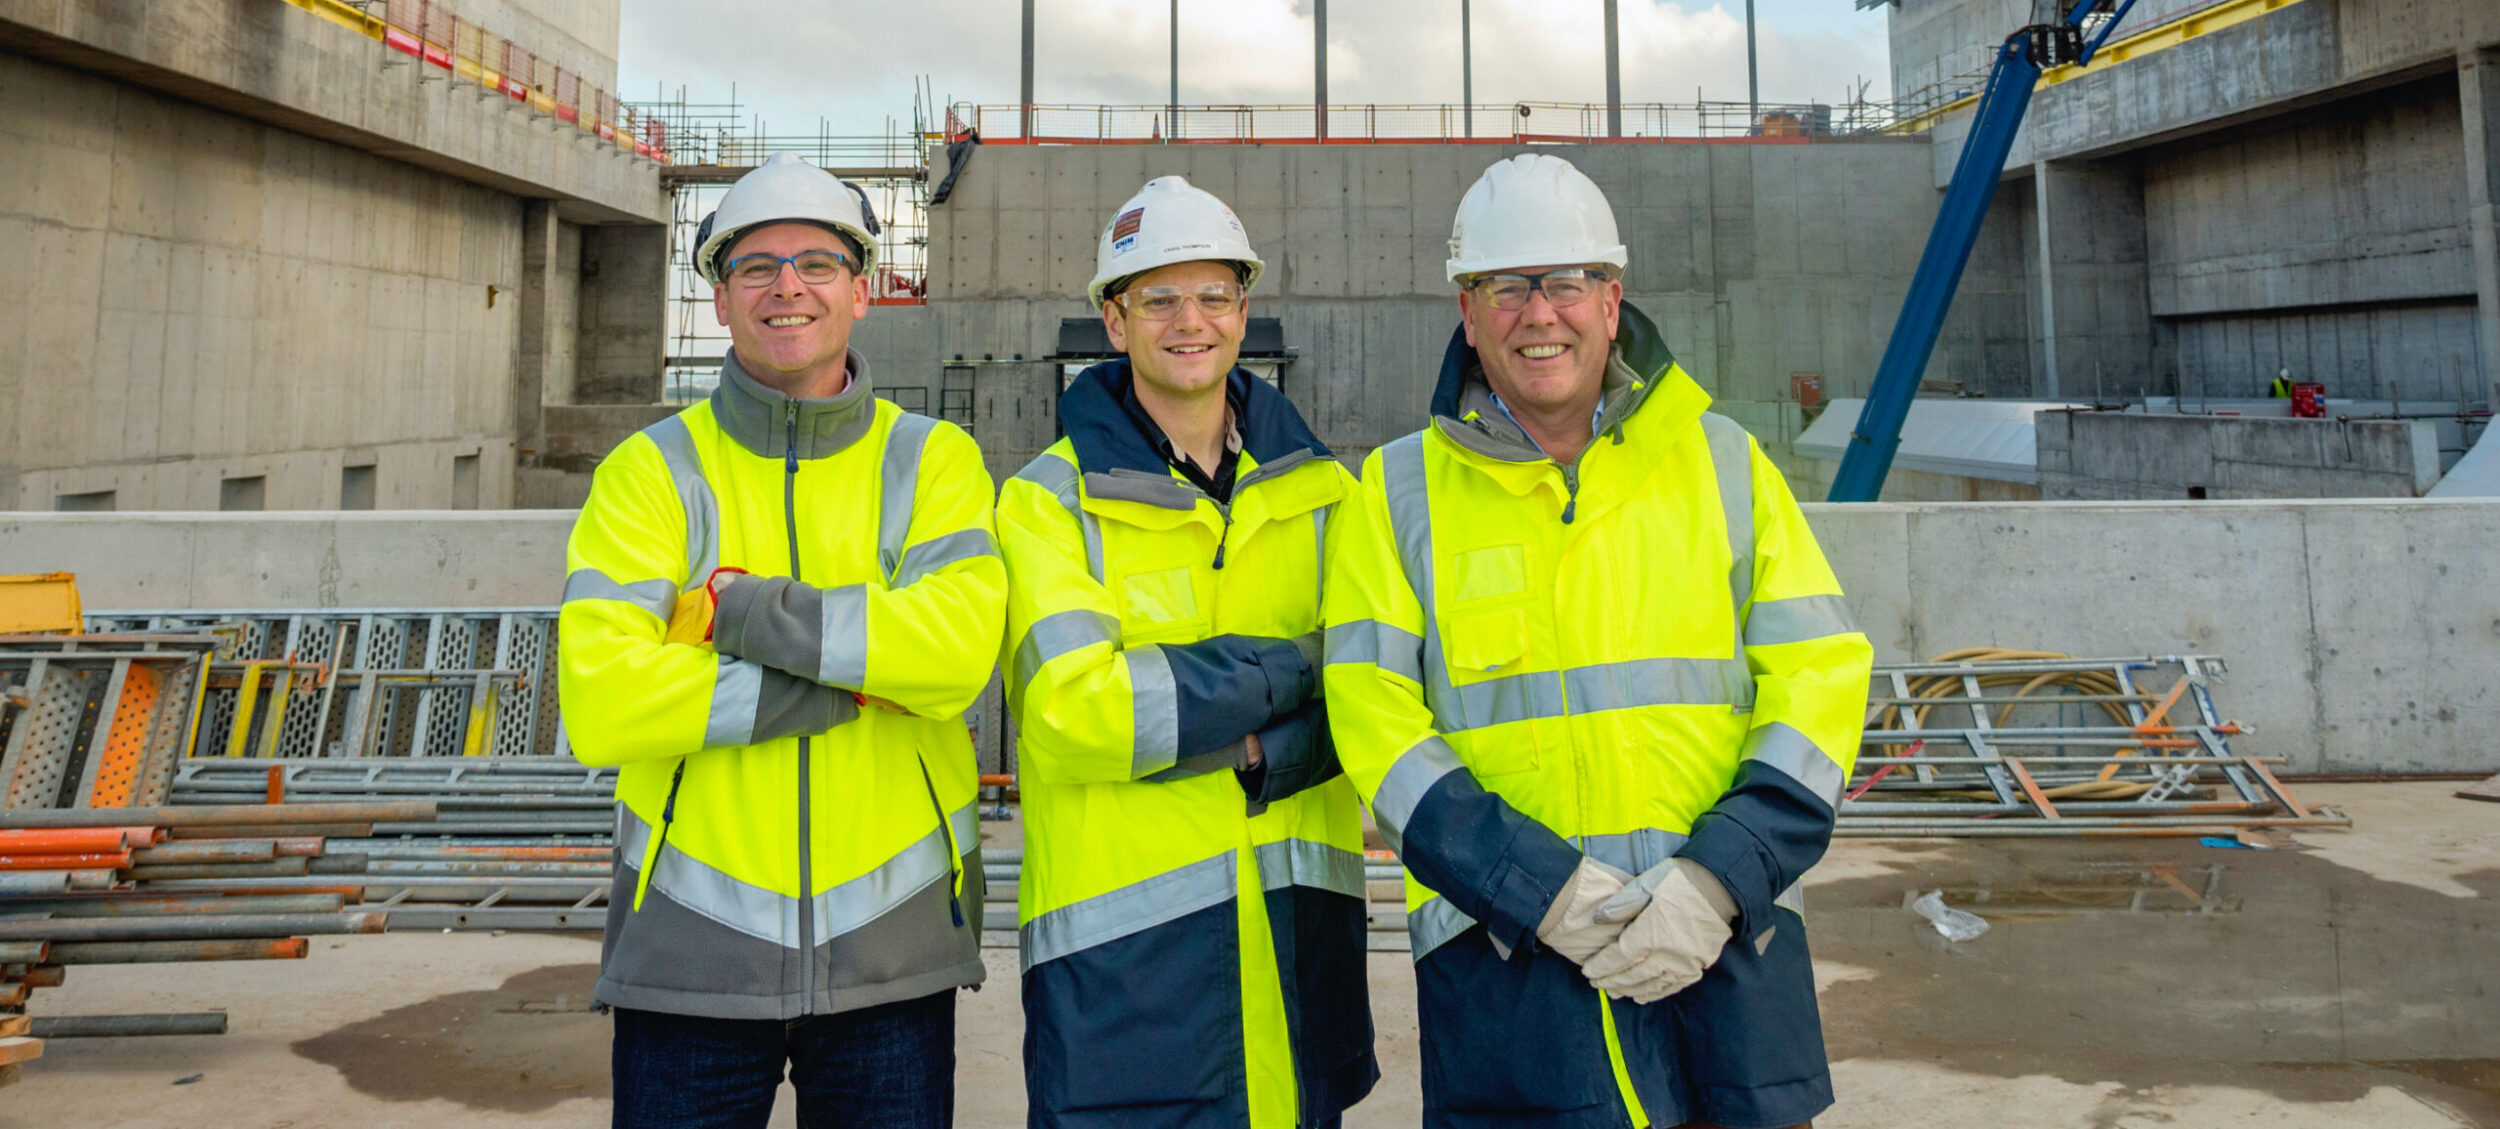 enfinium employees wearing high-vis jackets and hard hats outside a facility